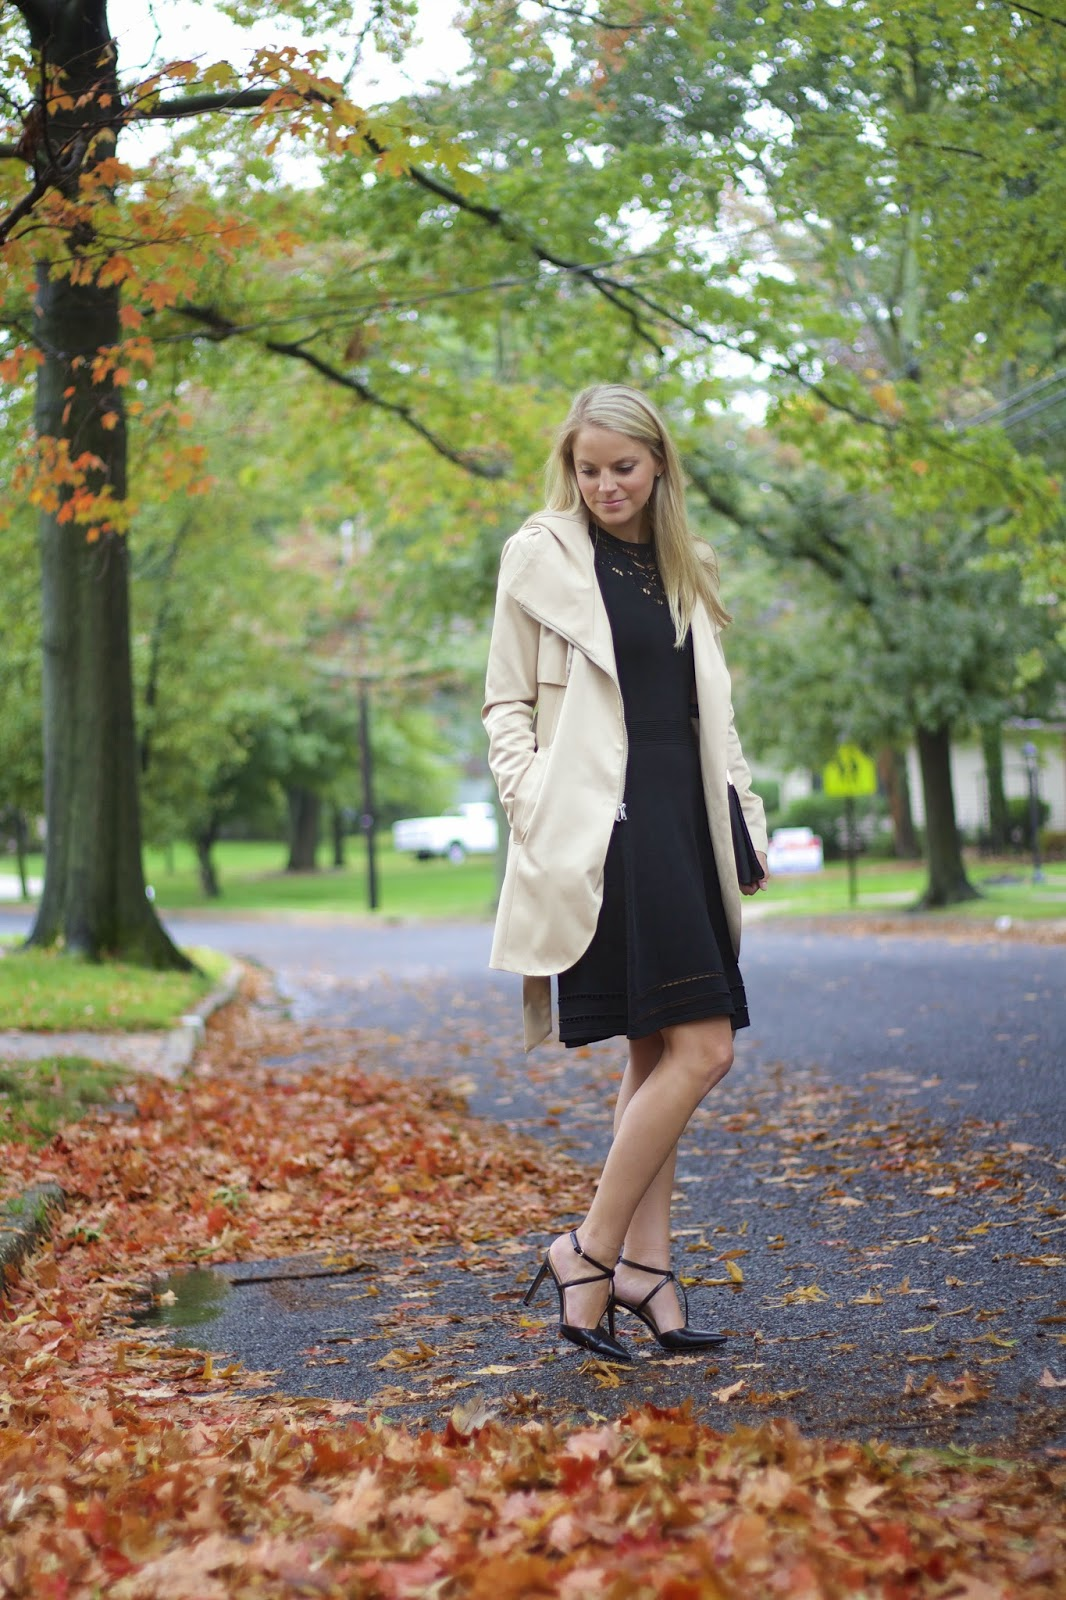 little black dress, lvd, wedding attire, hooded trench coat